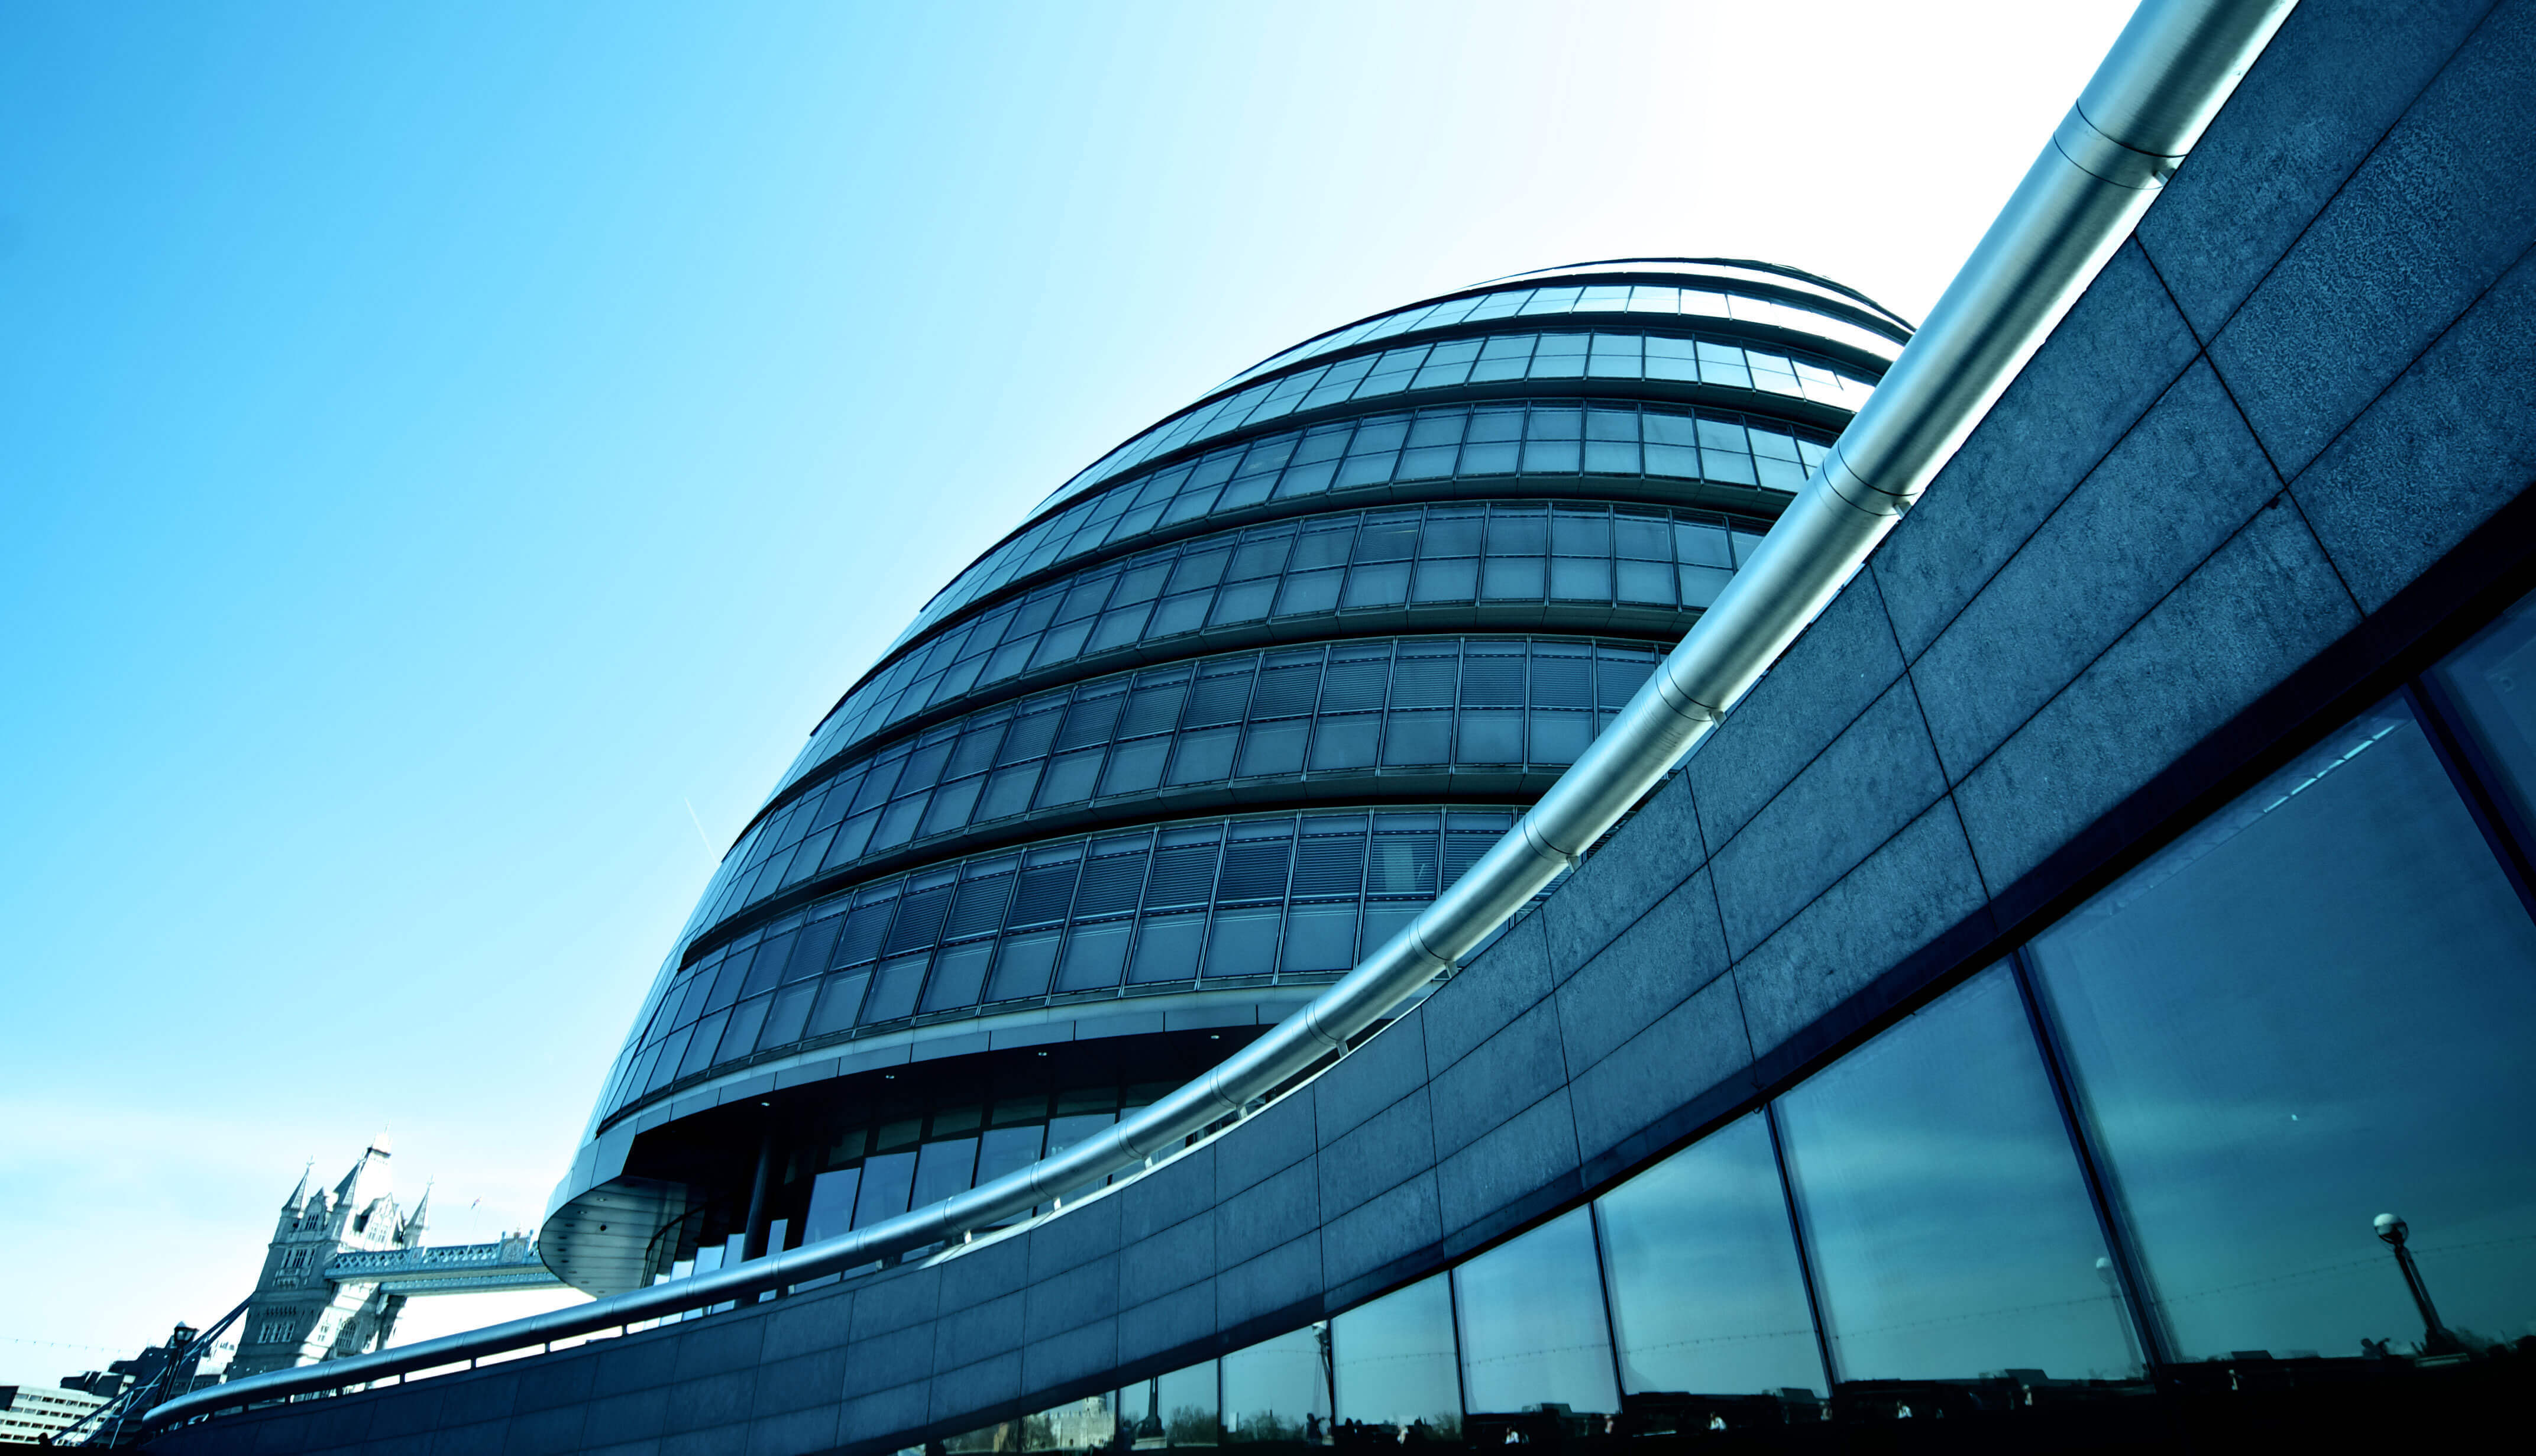 A photo taken at street-level of a dark grey building with floor-to-ceiling windows, clear blue sky